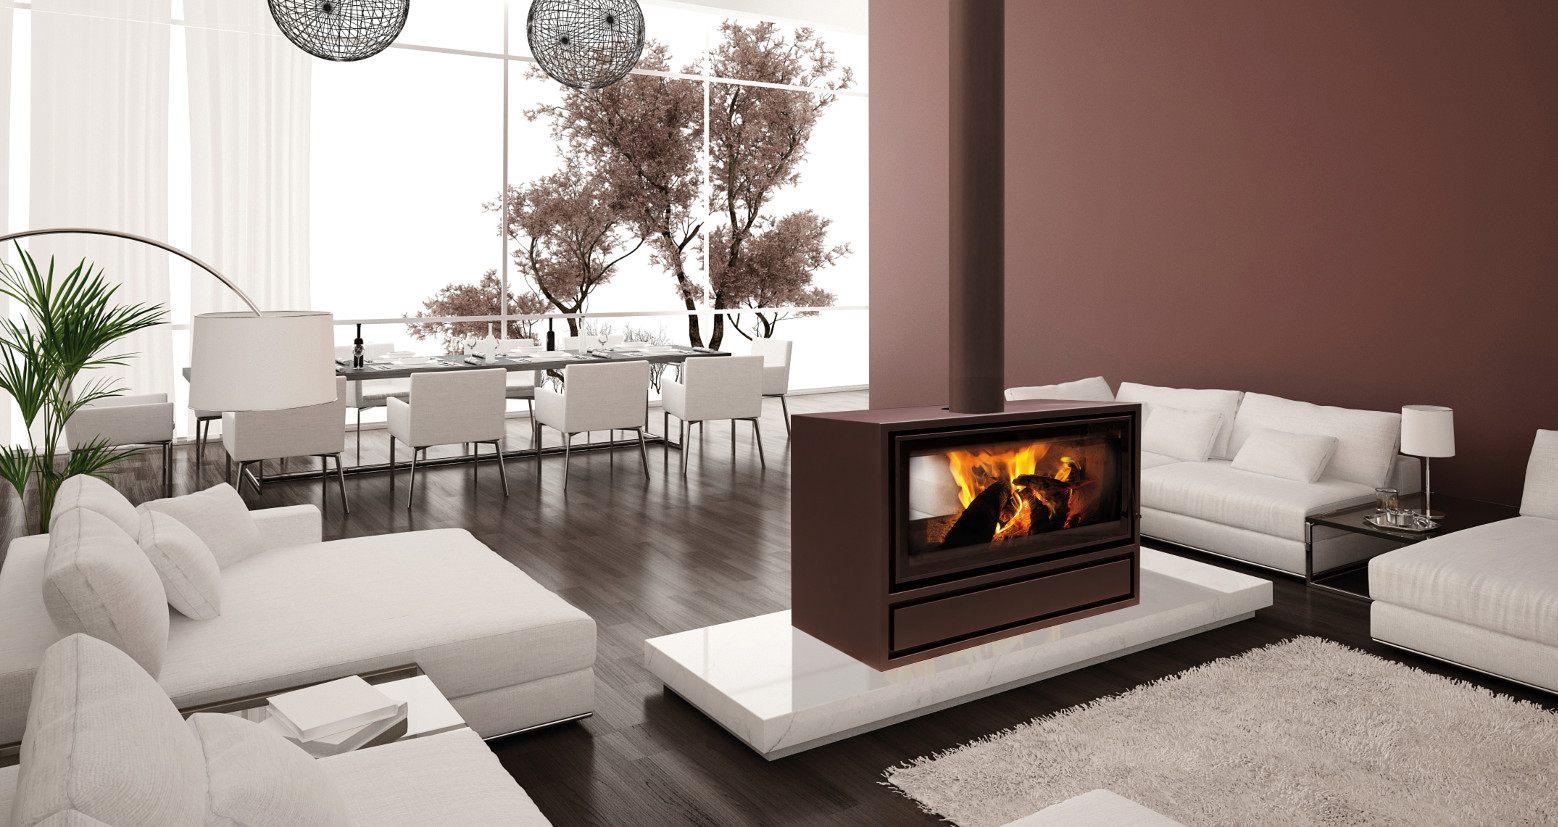 2 sided wood burning fireplace fireplace design ideas for 2 sided fireplace ideas